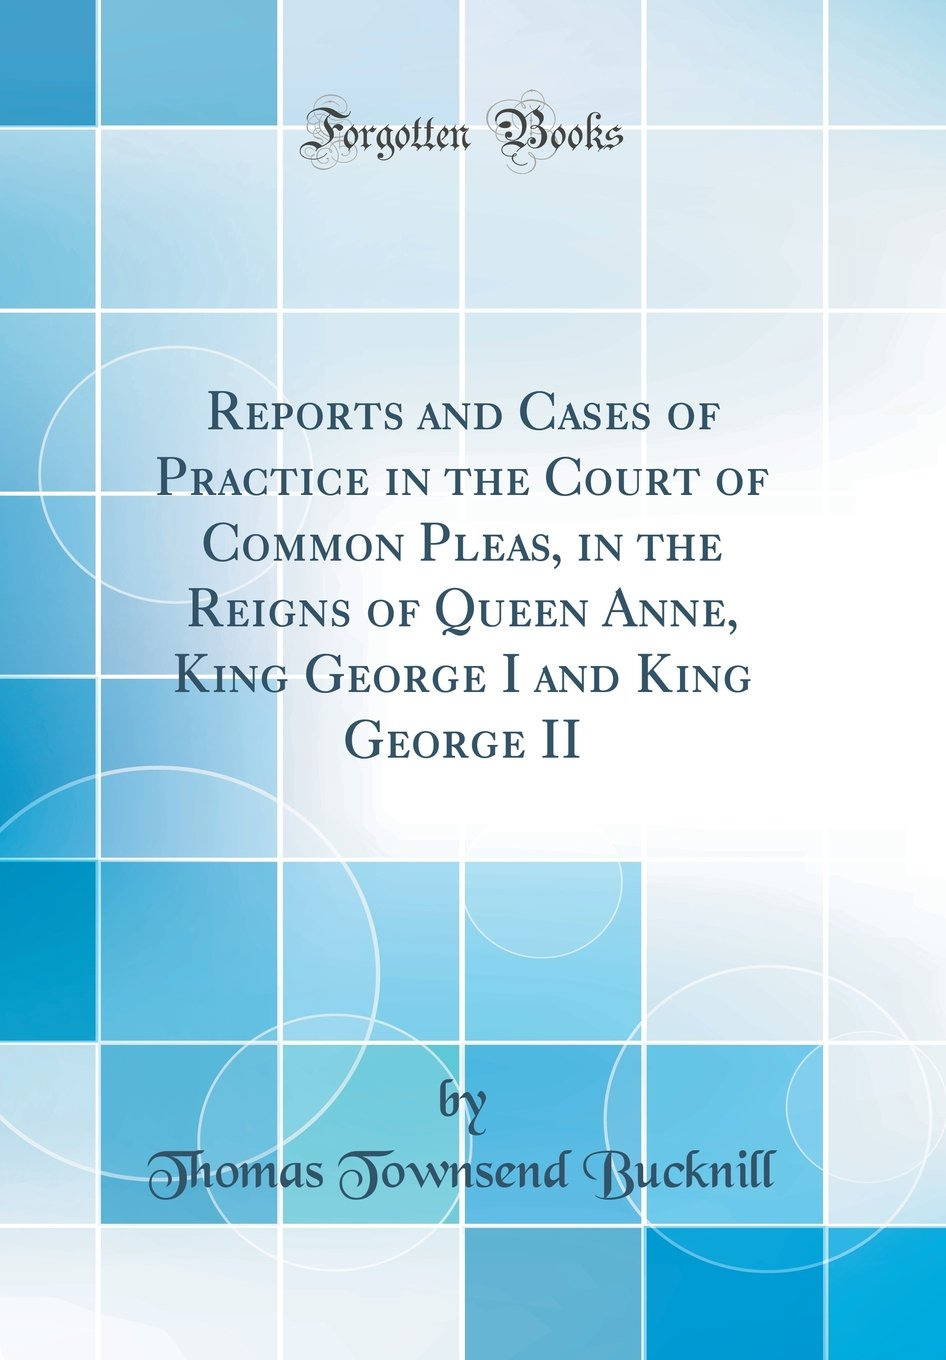 Download Reports and Cases of Practice in the Court of Common Pleas, in the Reigns of Queen Anne, King George I and King George II (Classic Reprint) PDF